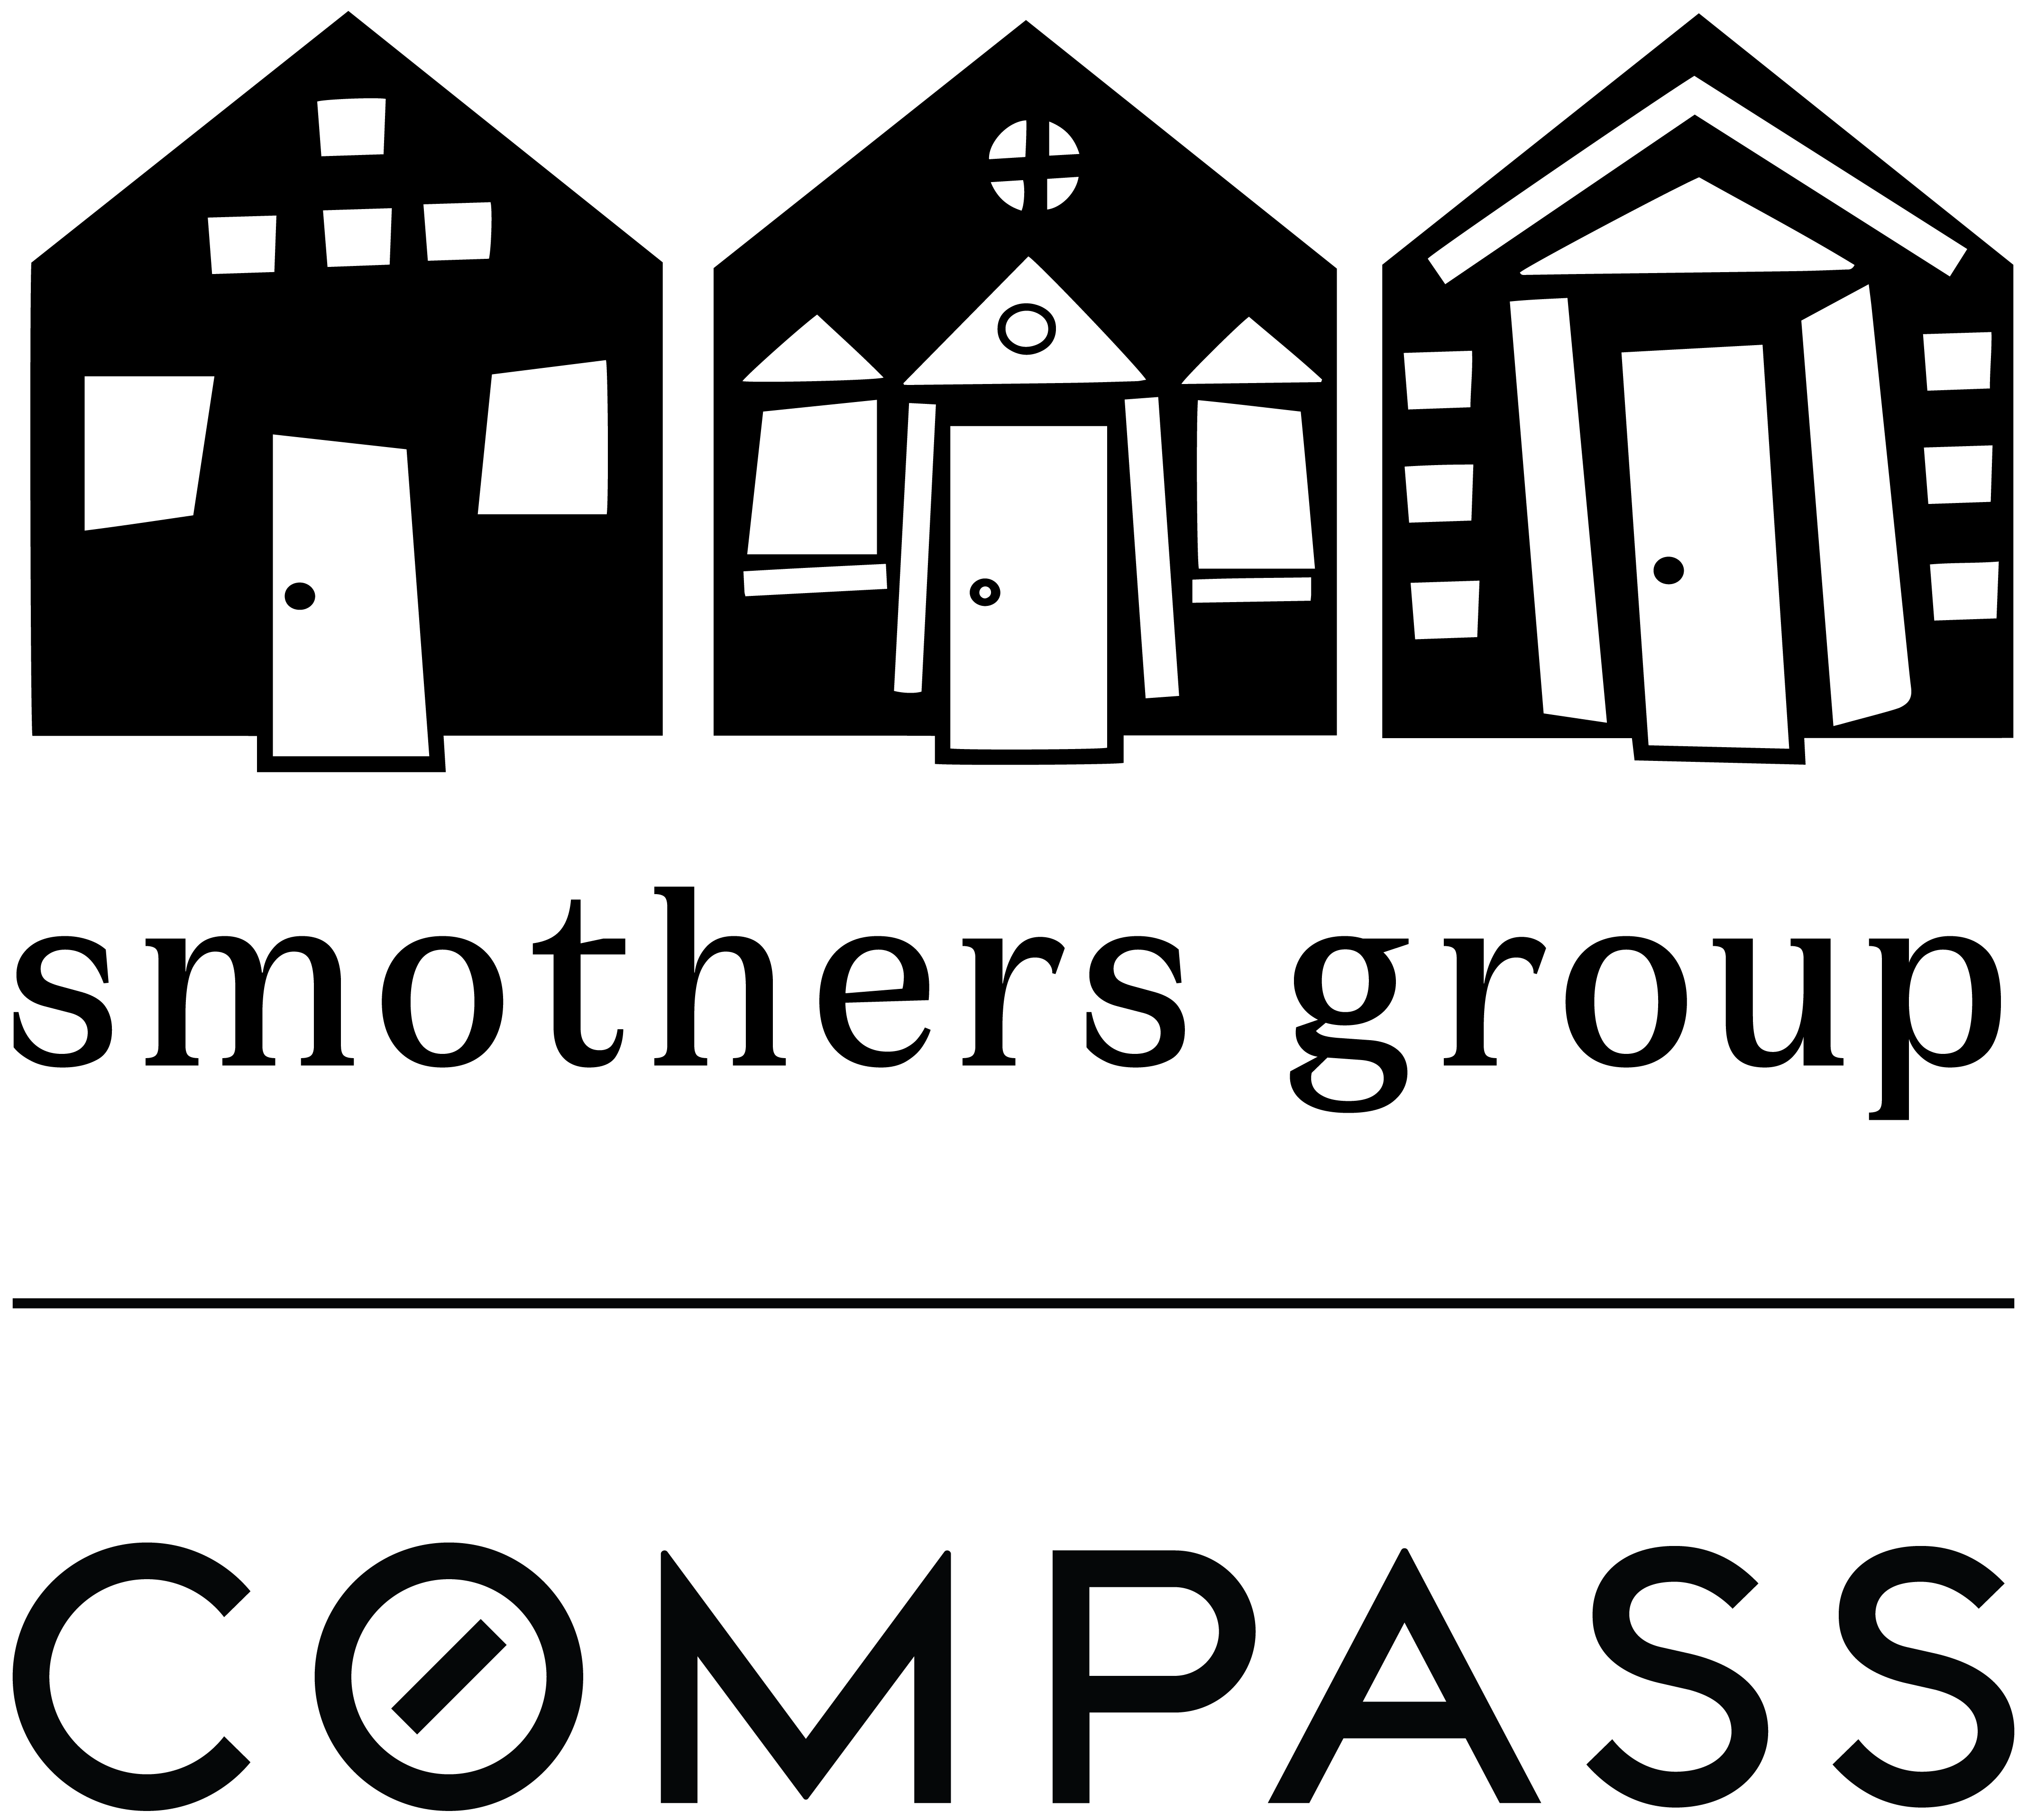 Smothers group square logo